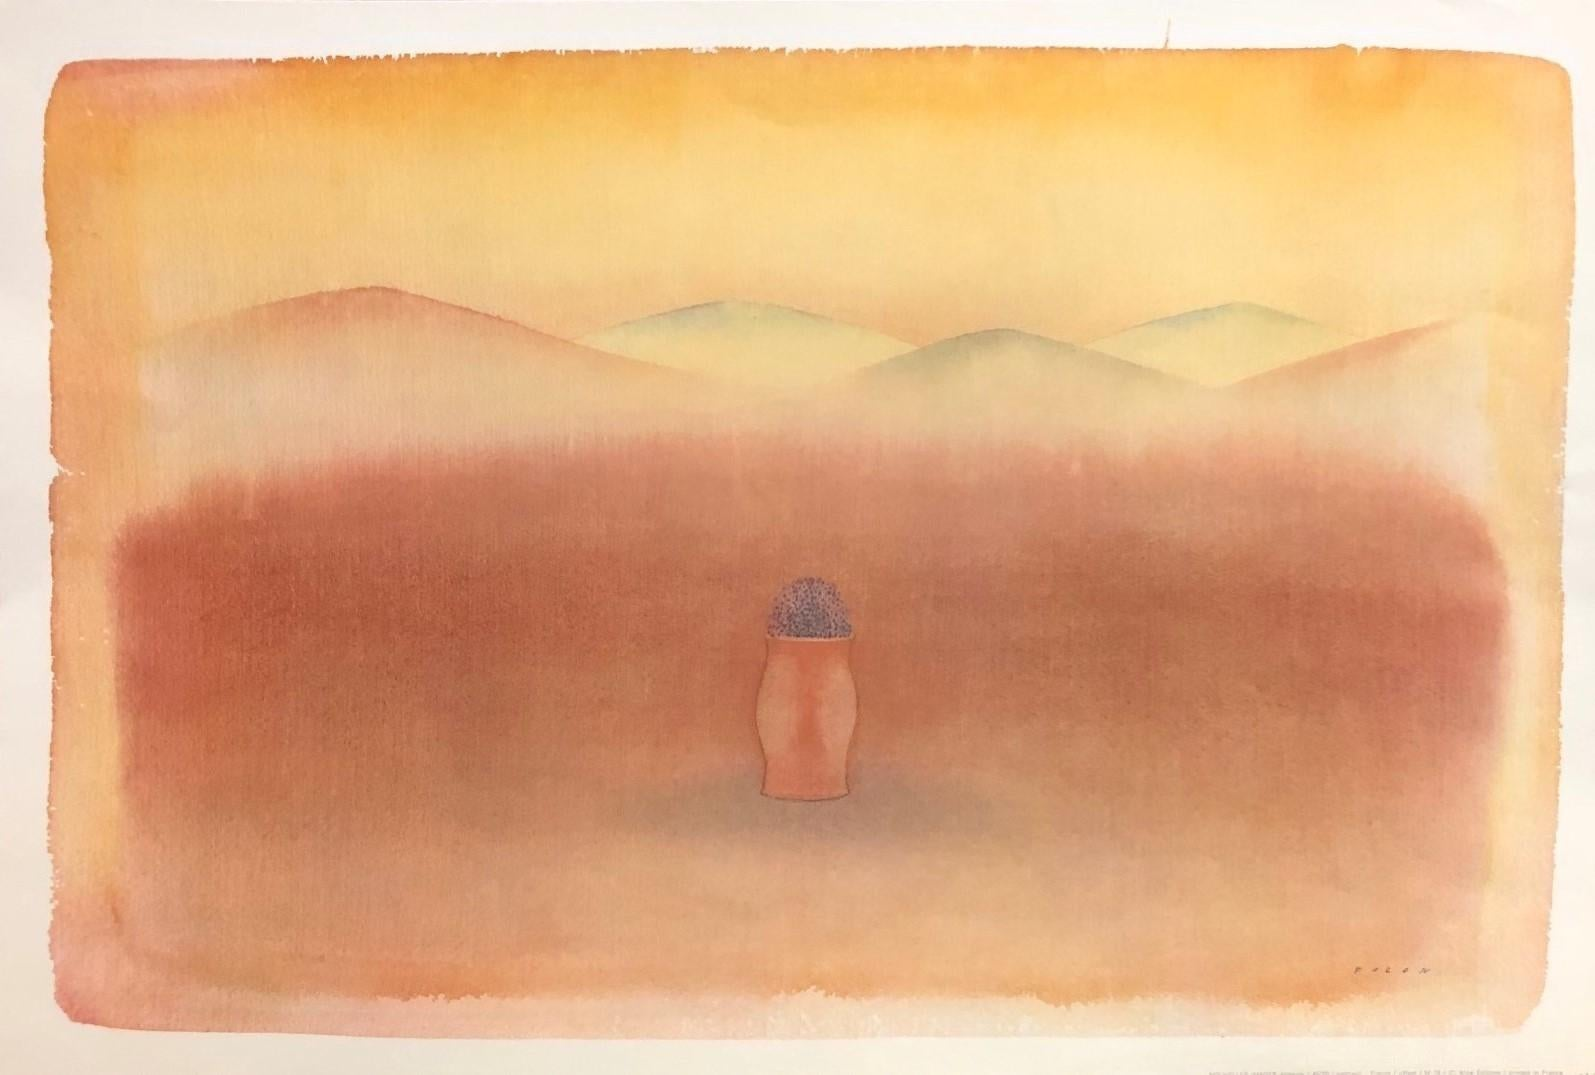 Pour Seurat-Offset Lithograph. Nouvelles Images, Printed in France